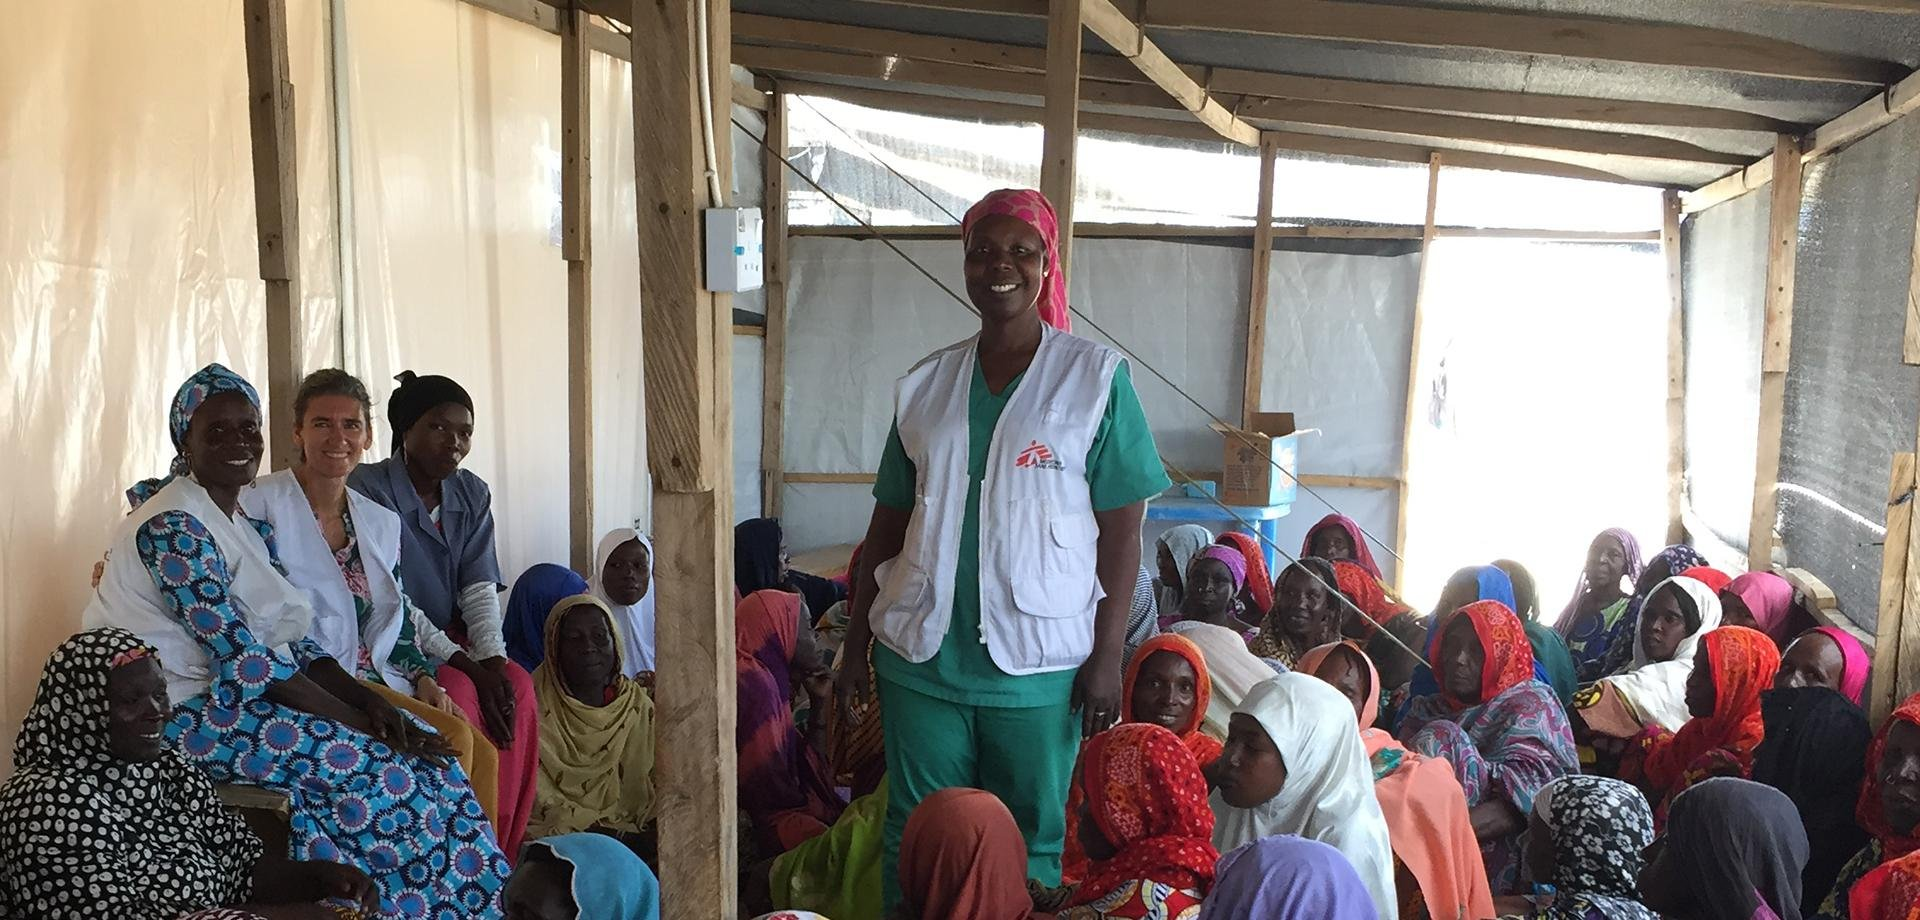 Aisha  Akello works with MSF at IPD camp in Ngala, Northeast Nigeria